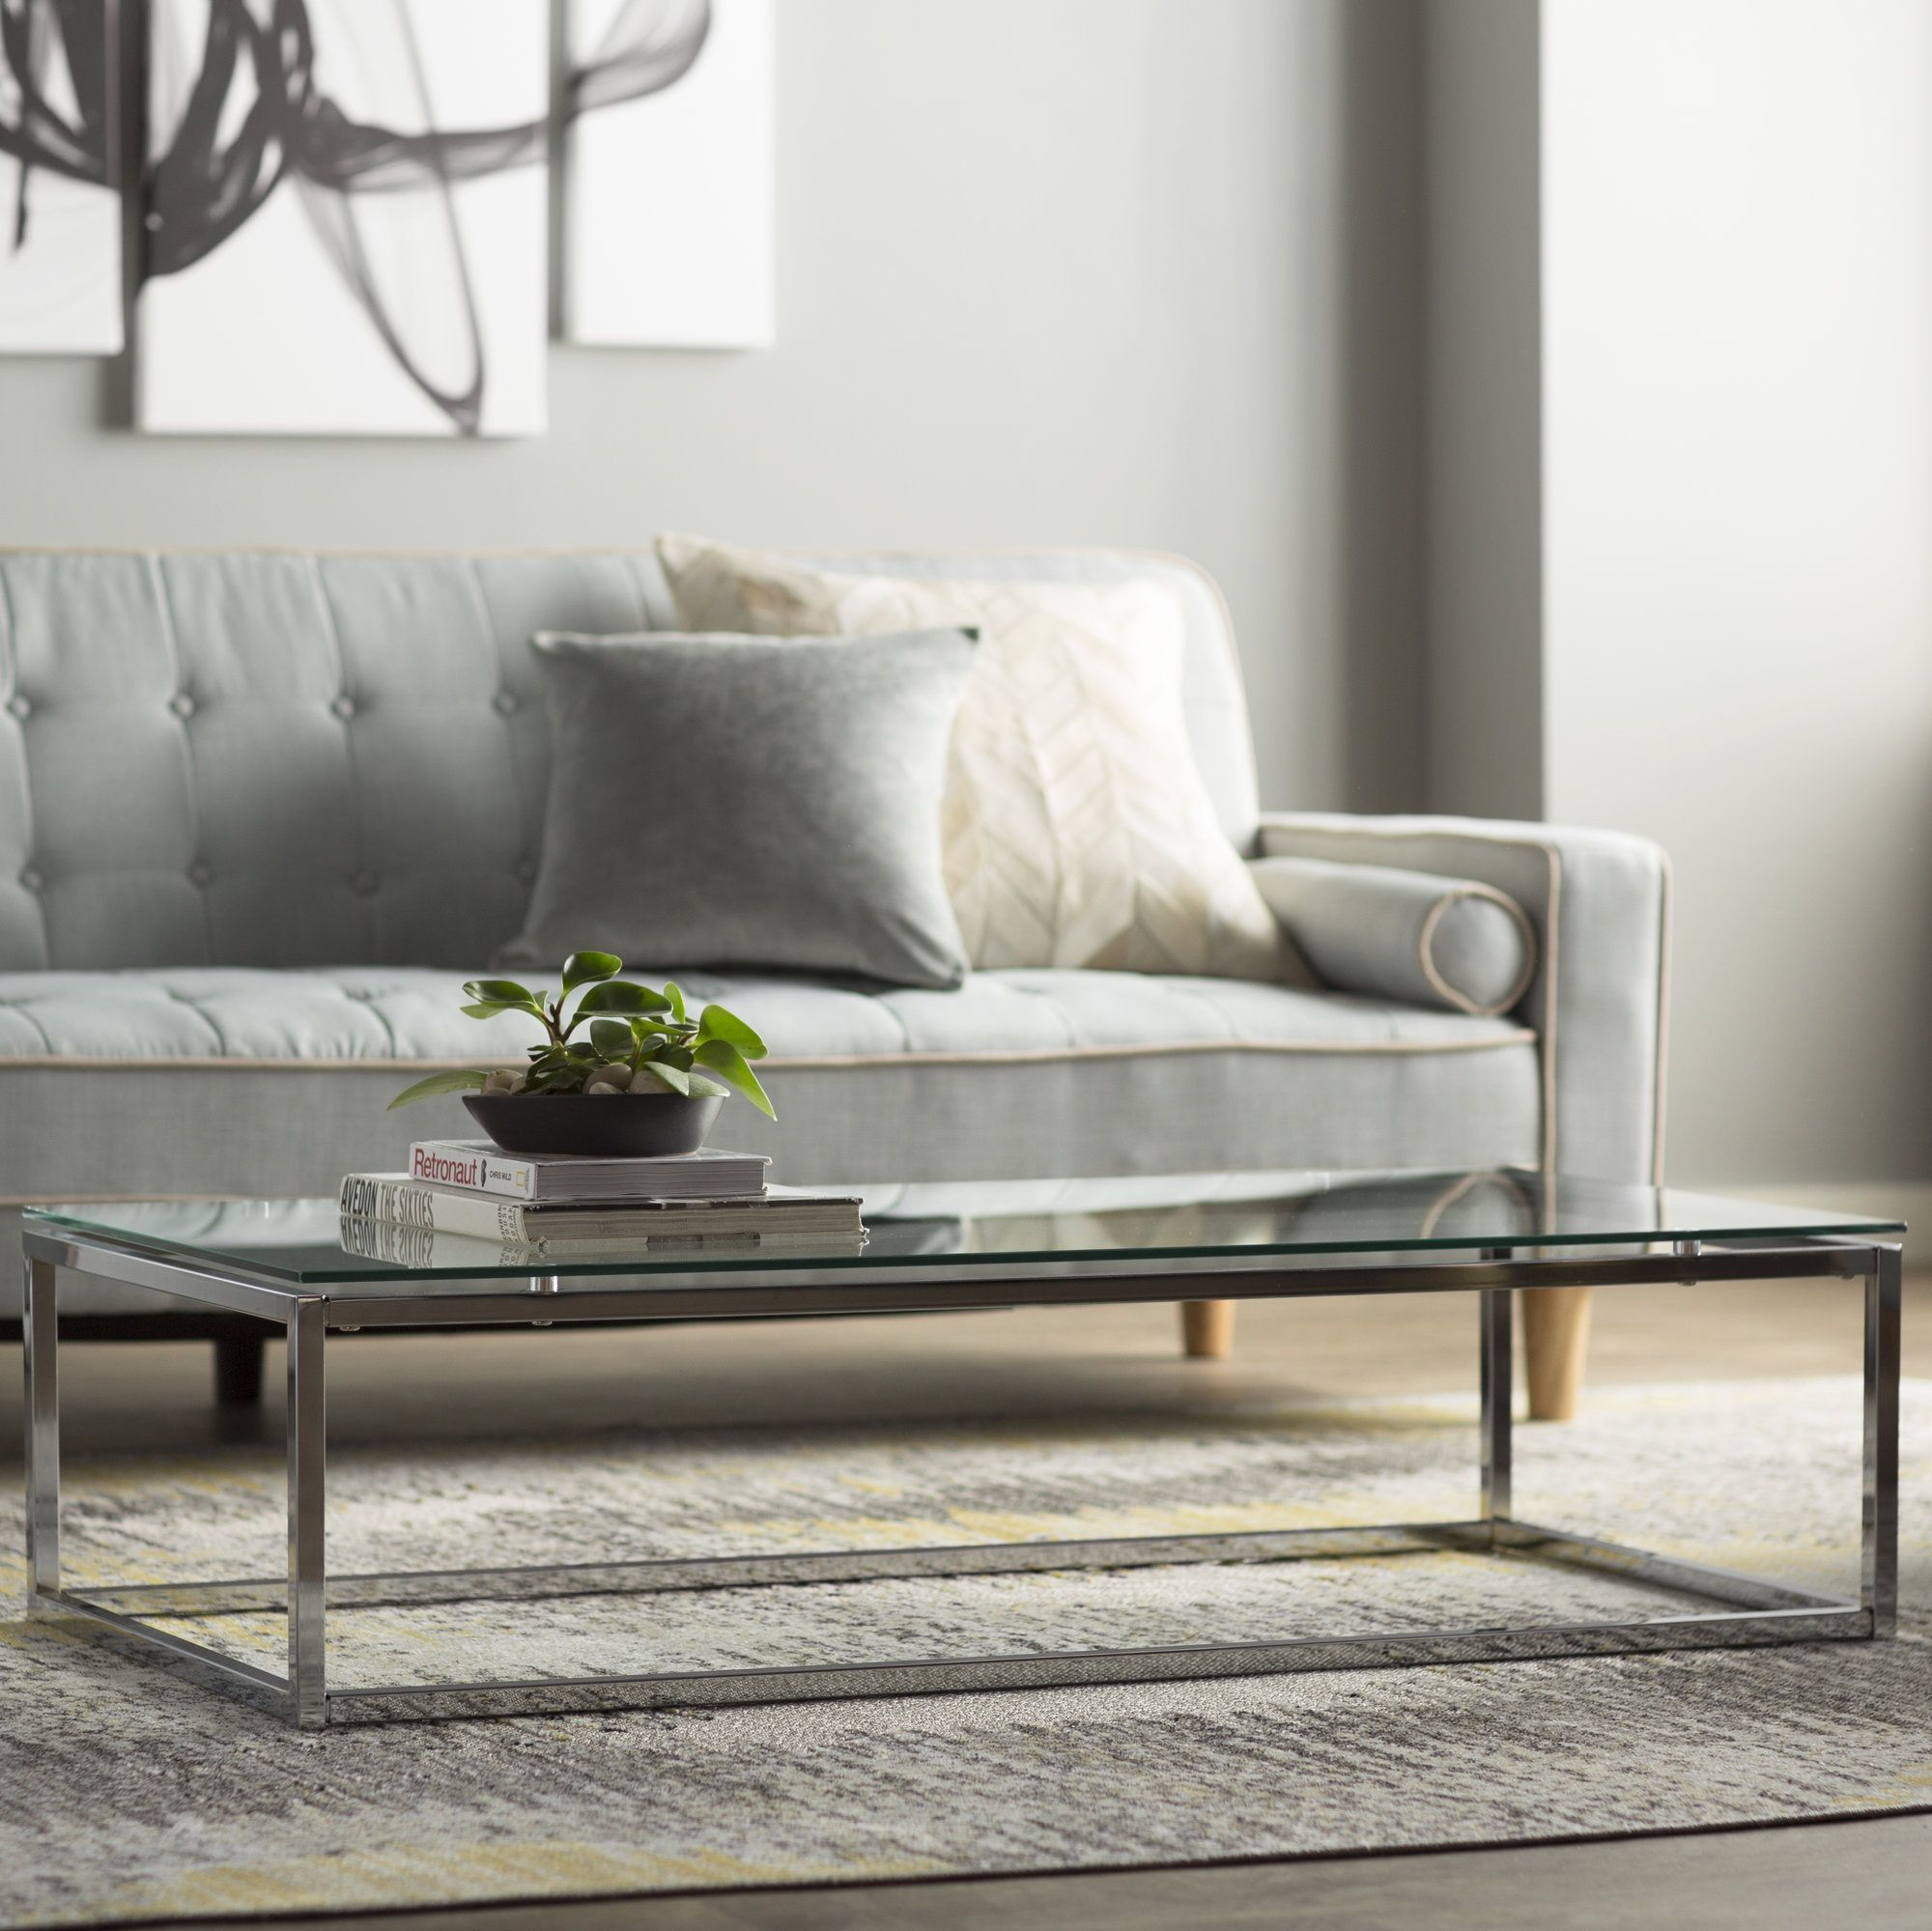 Bellewood Coffee Table 3 Piece Coffee Table Set Coffee Table Coffee Table Setting [ 1999 x 2000 Pixel ]